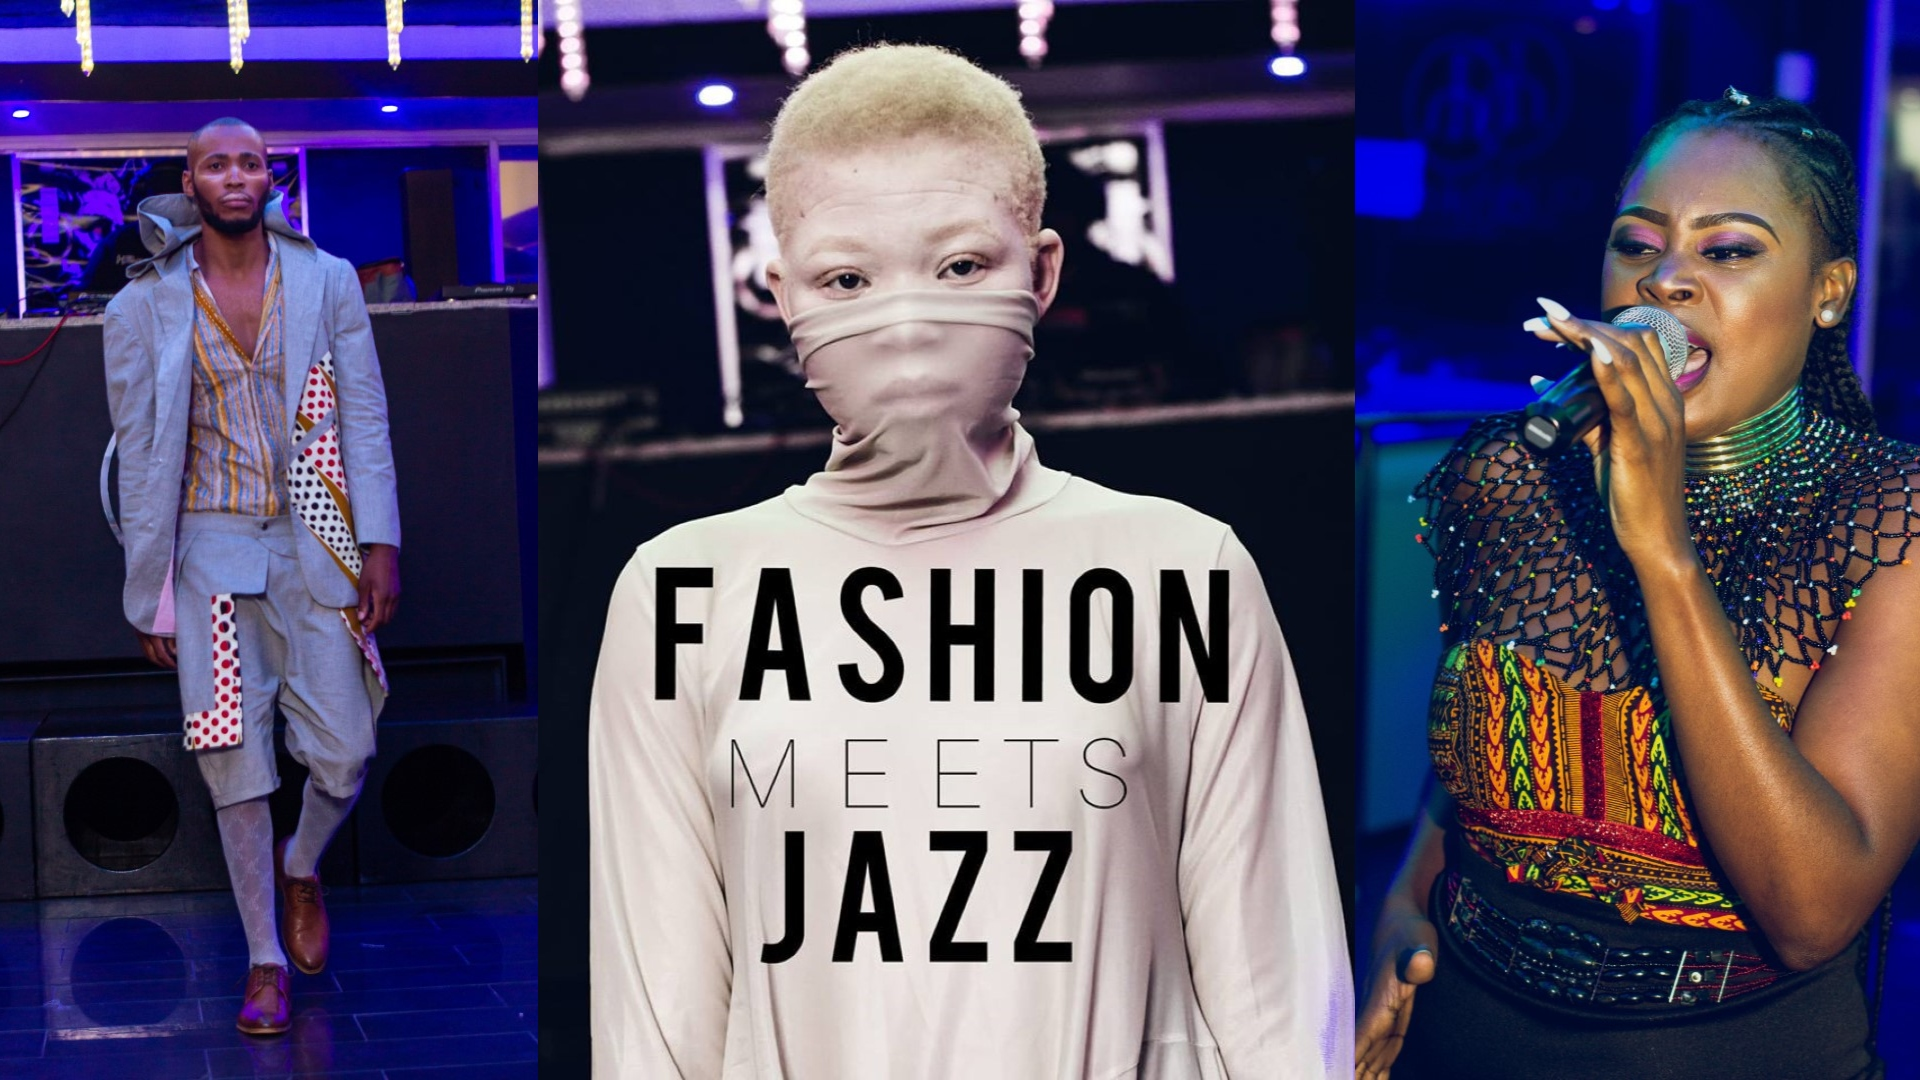 Music Student Behind Fashion Meets Jazz Show